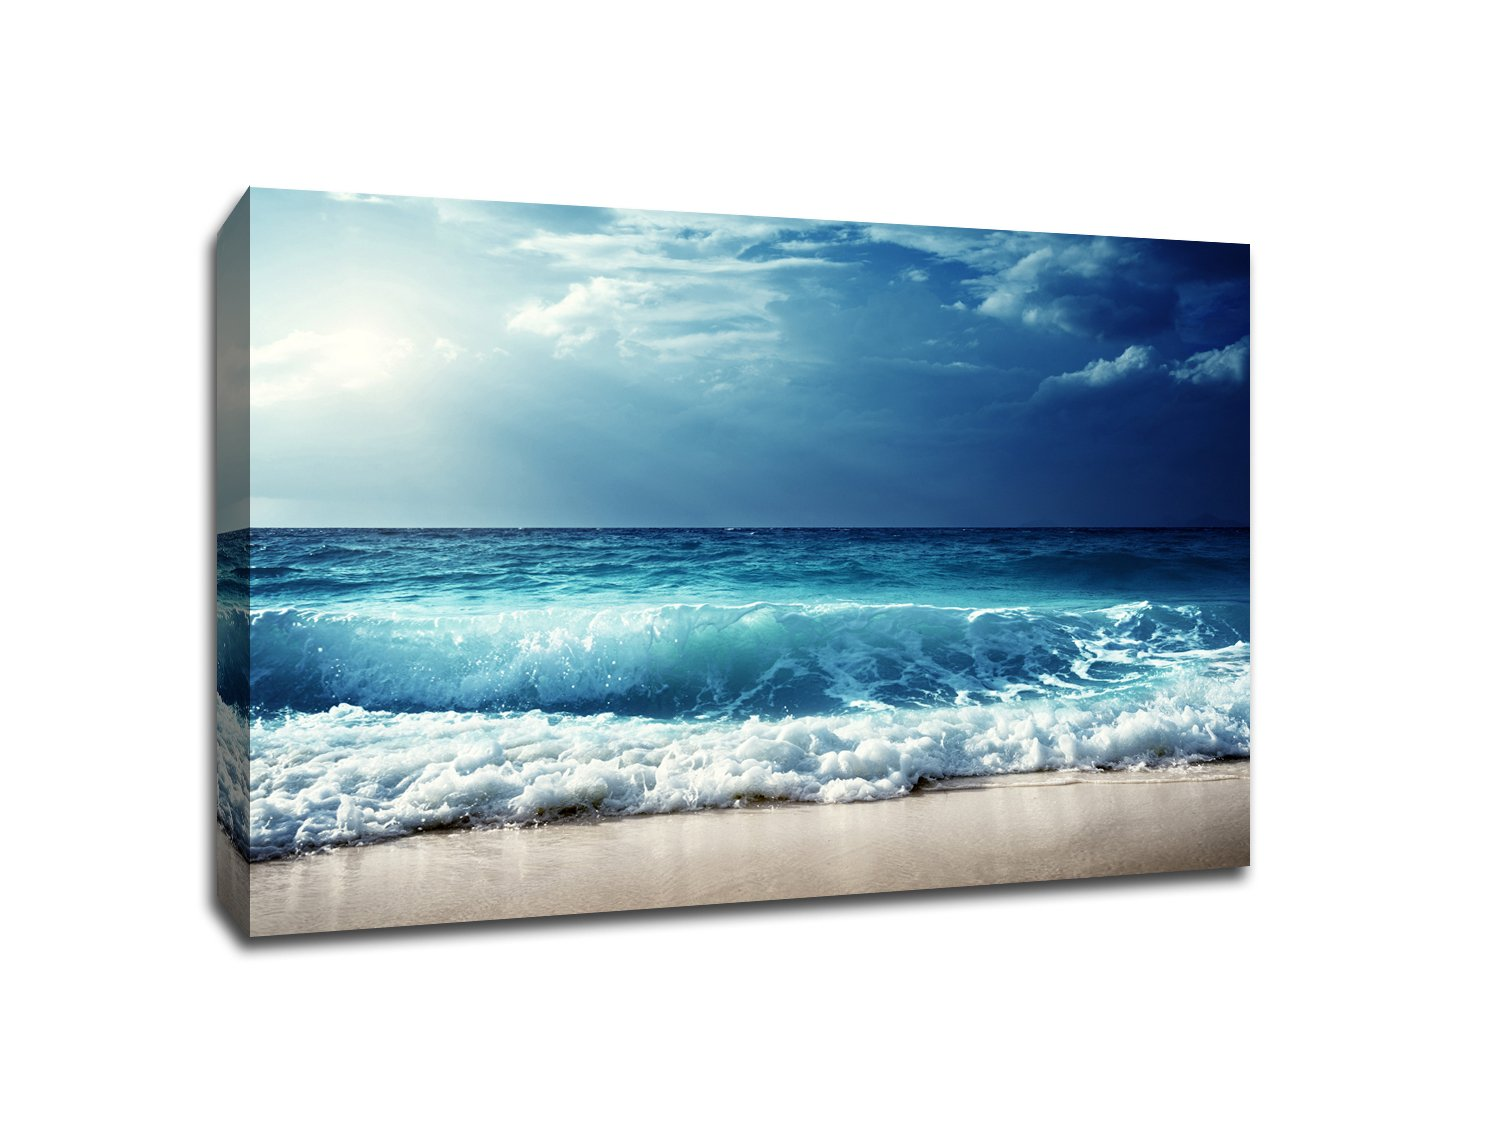 Cloudy Waves - Water Landscapes - 48x36 Gallery Wrapped Canvas Wall Art